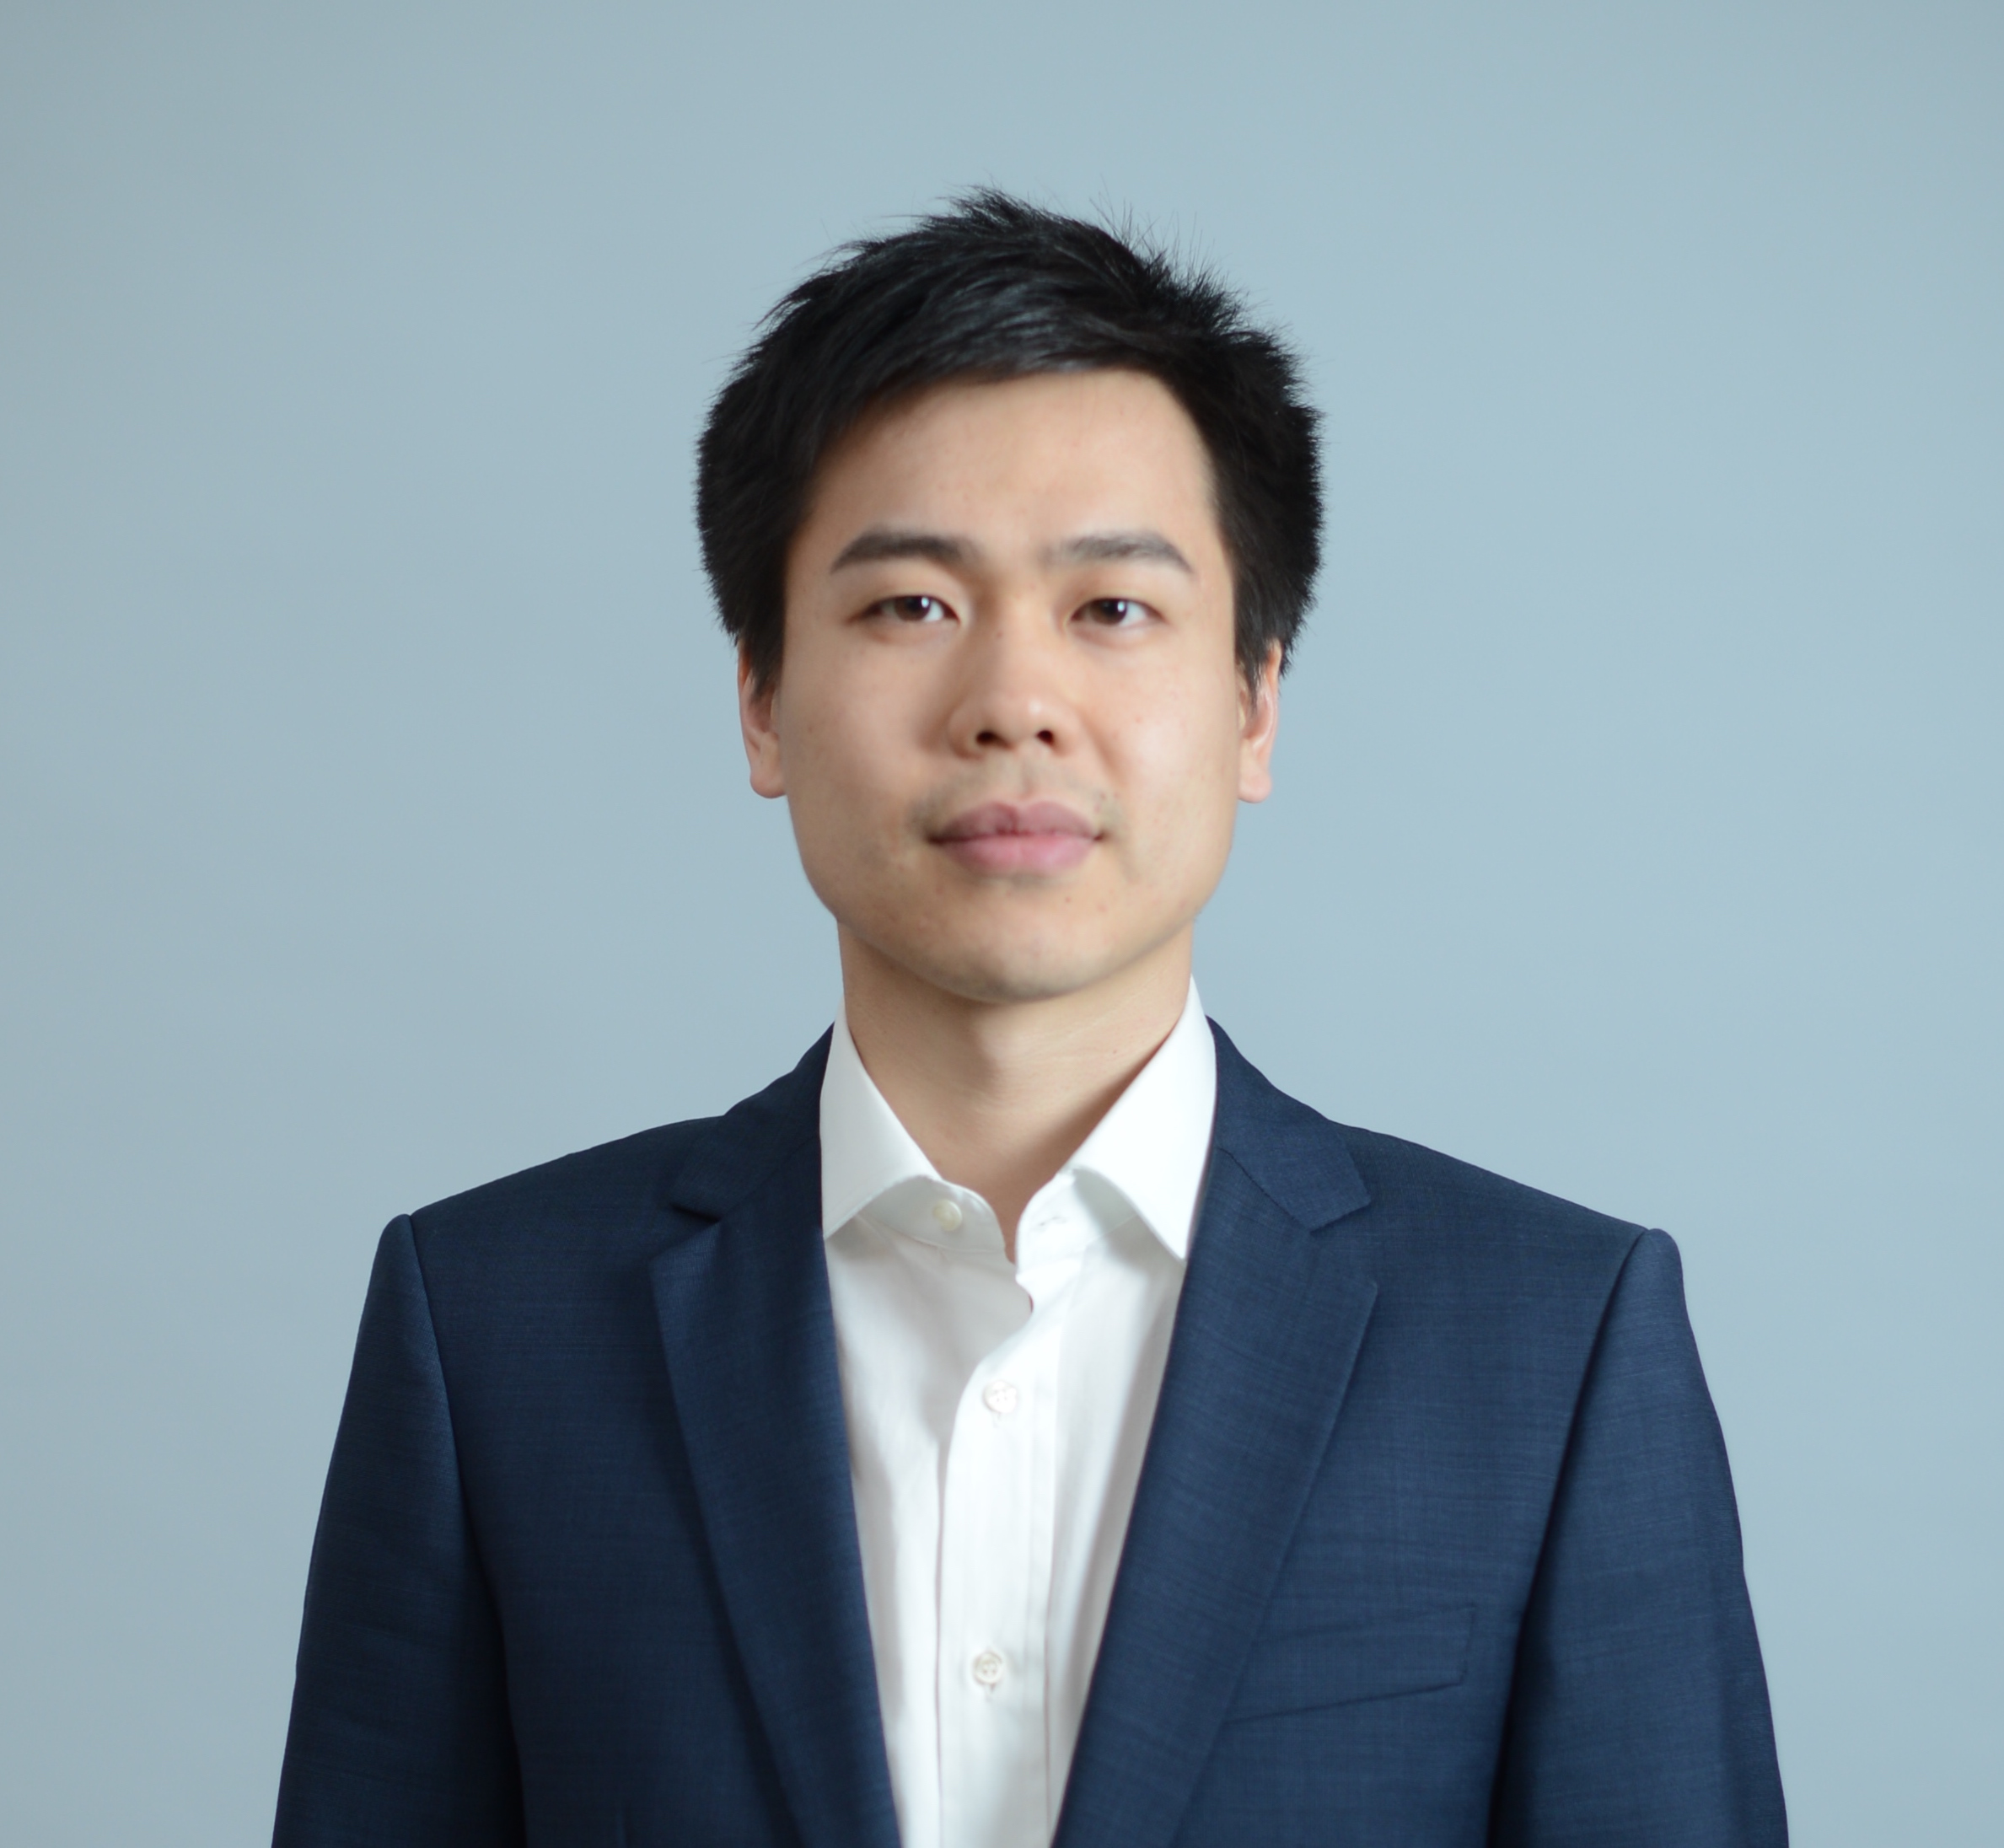 Matty Lin, TikTok's managing director of monetization and partnerships